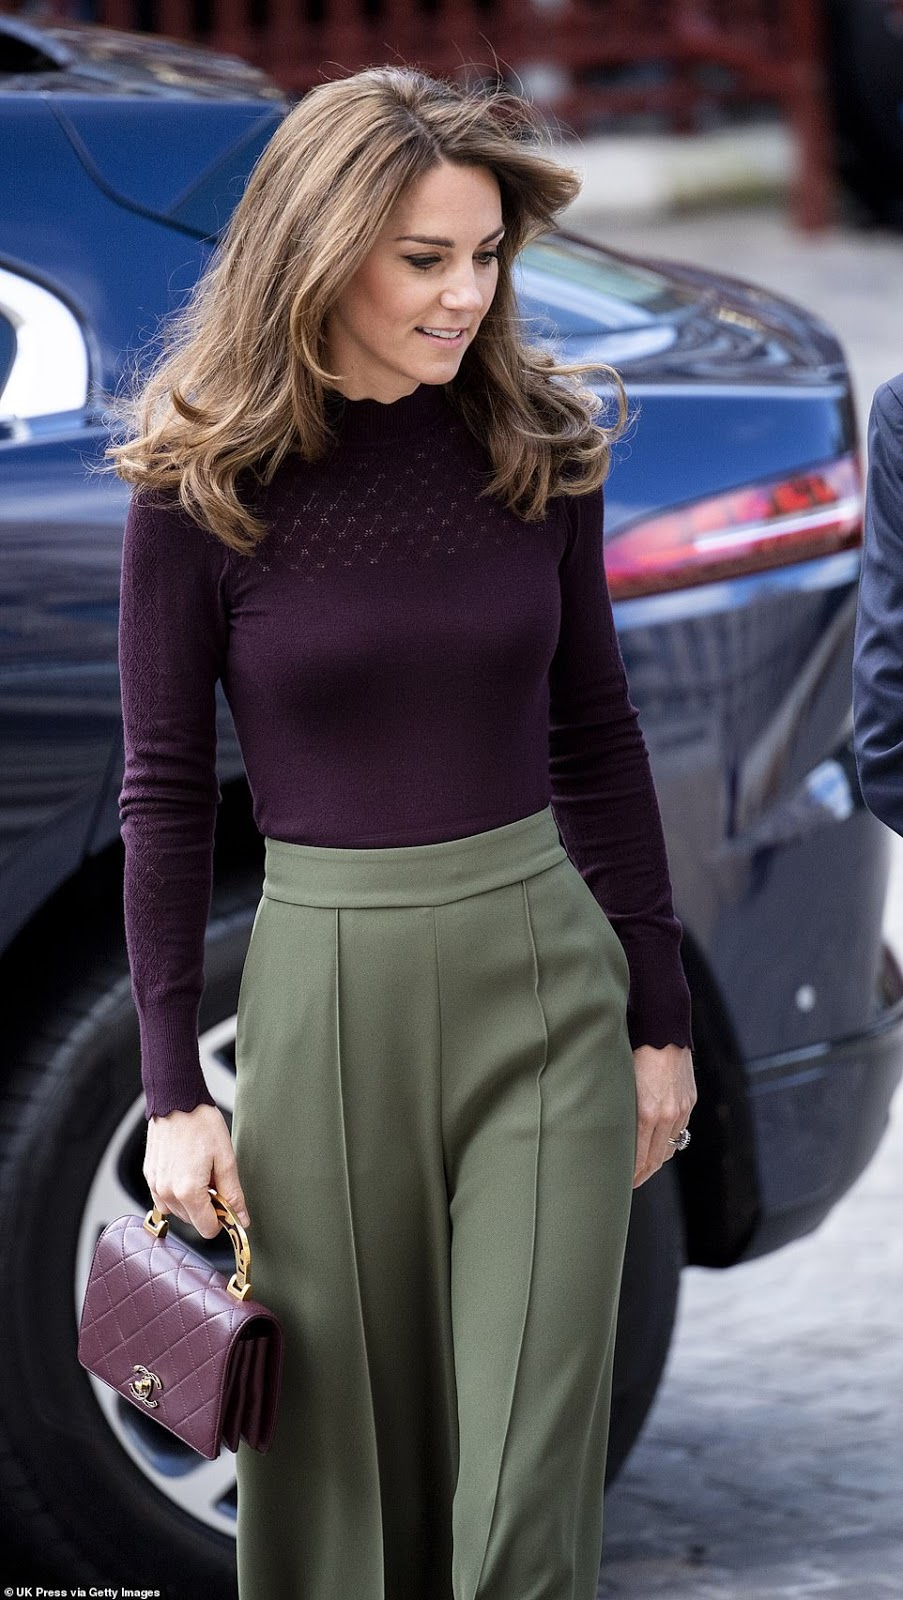 Kate Middleton Carries a Chanel Bag While Wearing Wide-Leg Pants and a Knit Sweater